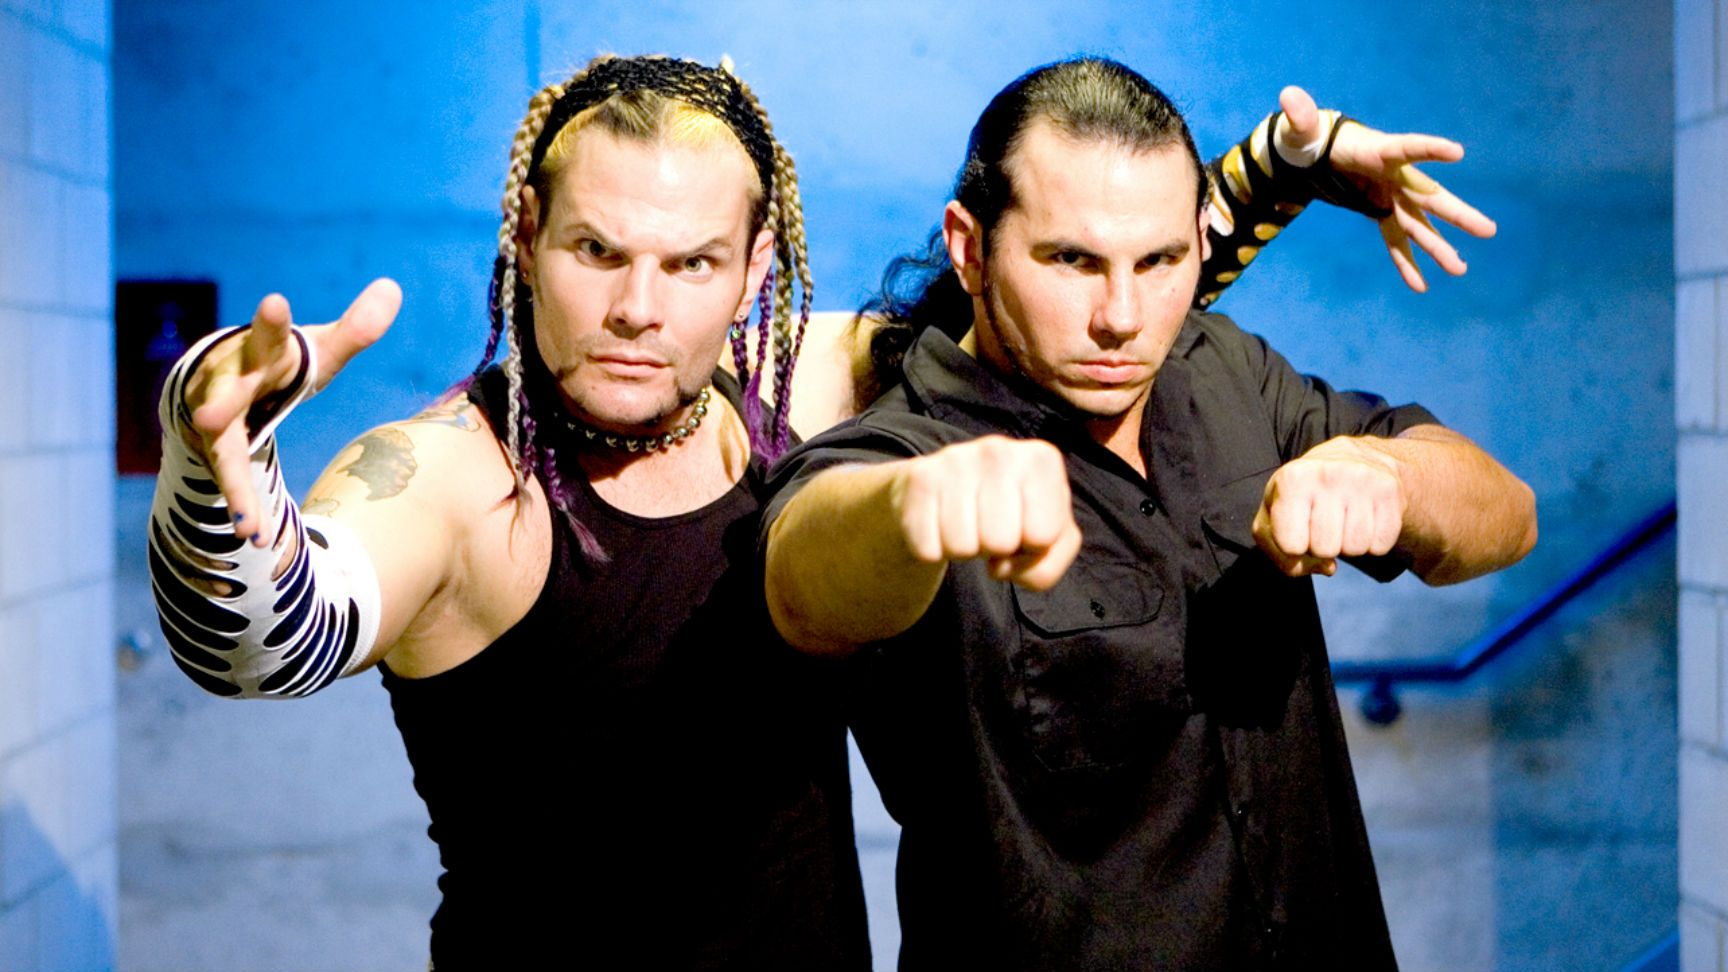 The 20 Greatest Brother Tag Teams In Wrestling History